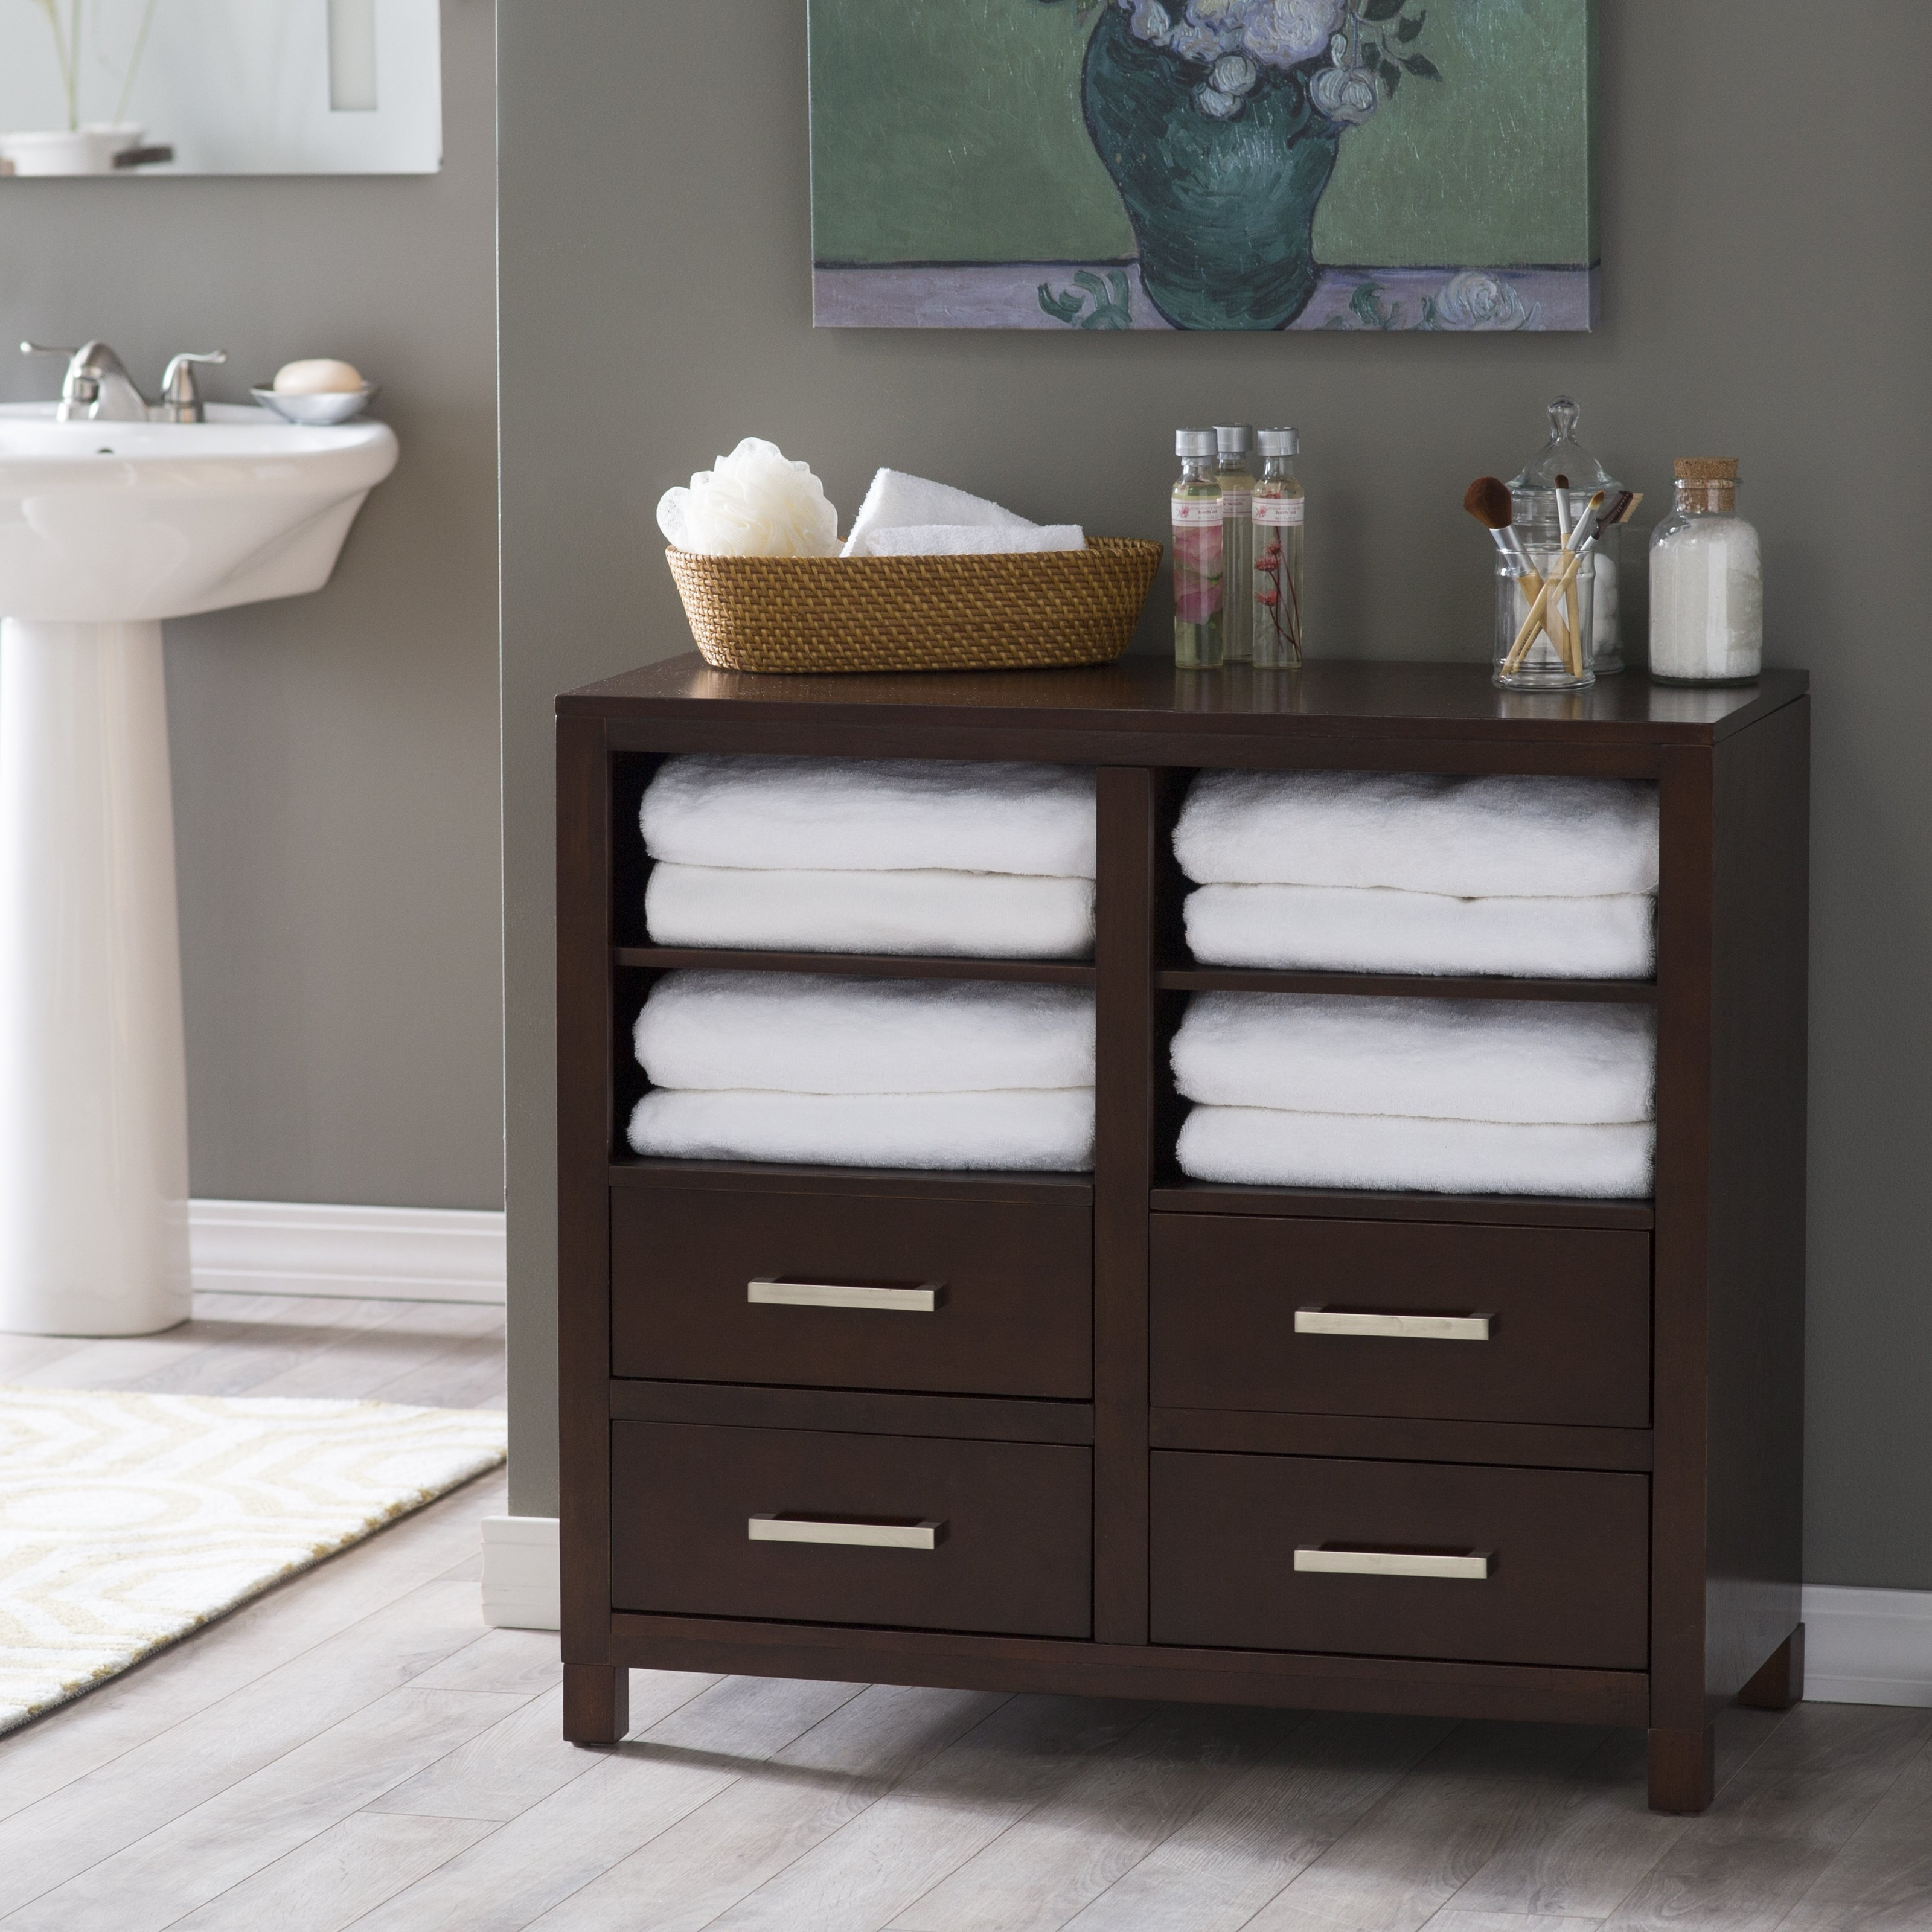 Permalink to Floor Cabinets For Bathrooms